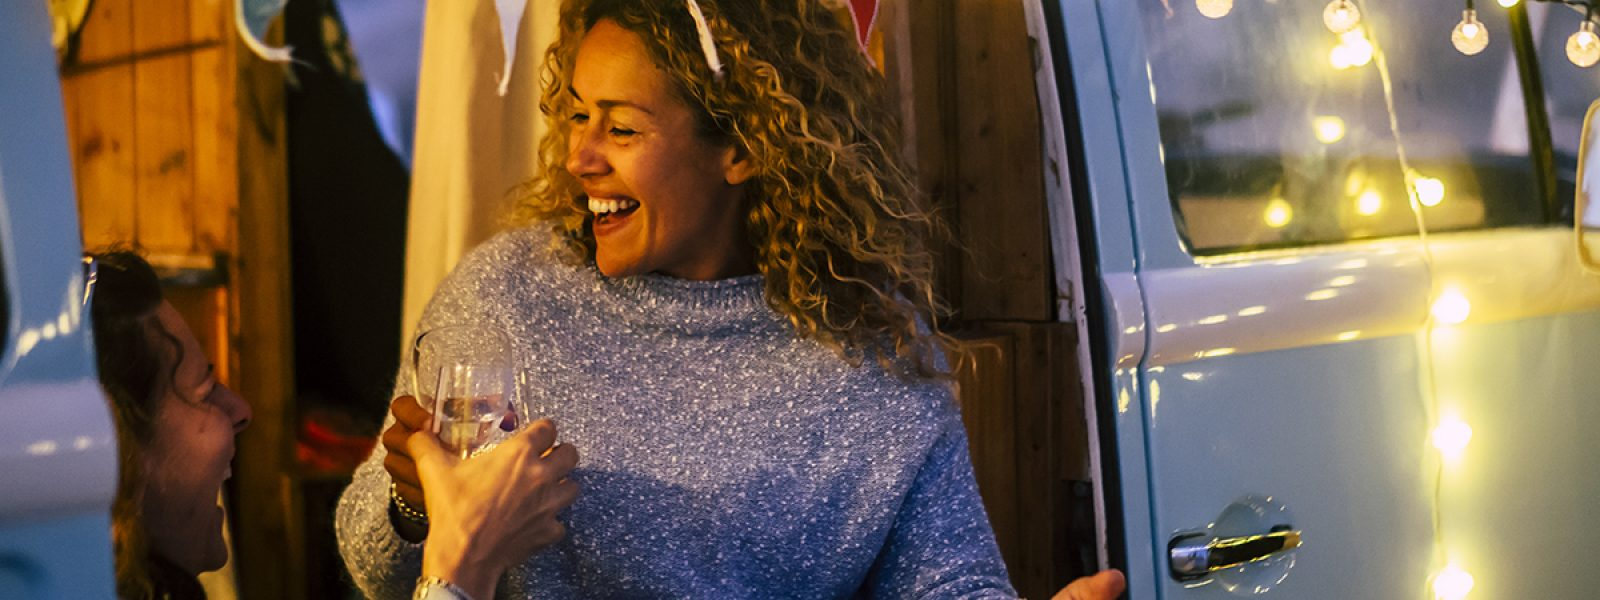 Alternative travel and celebration concept with couple of people adult cheerful happy women celebrate together in a vintage van camper  and party lights outdoor